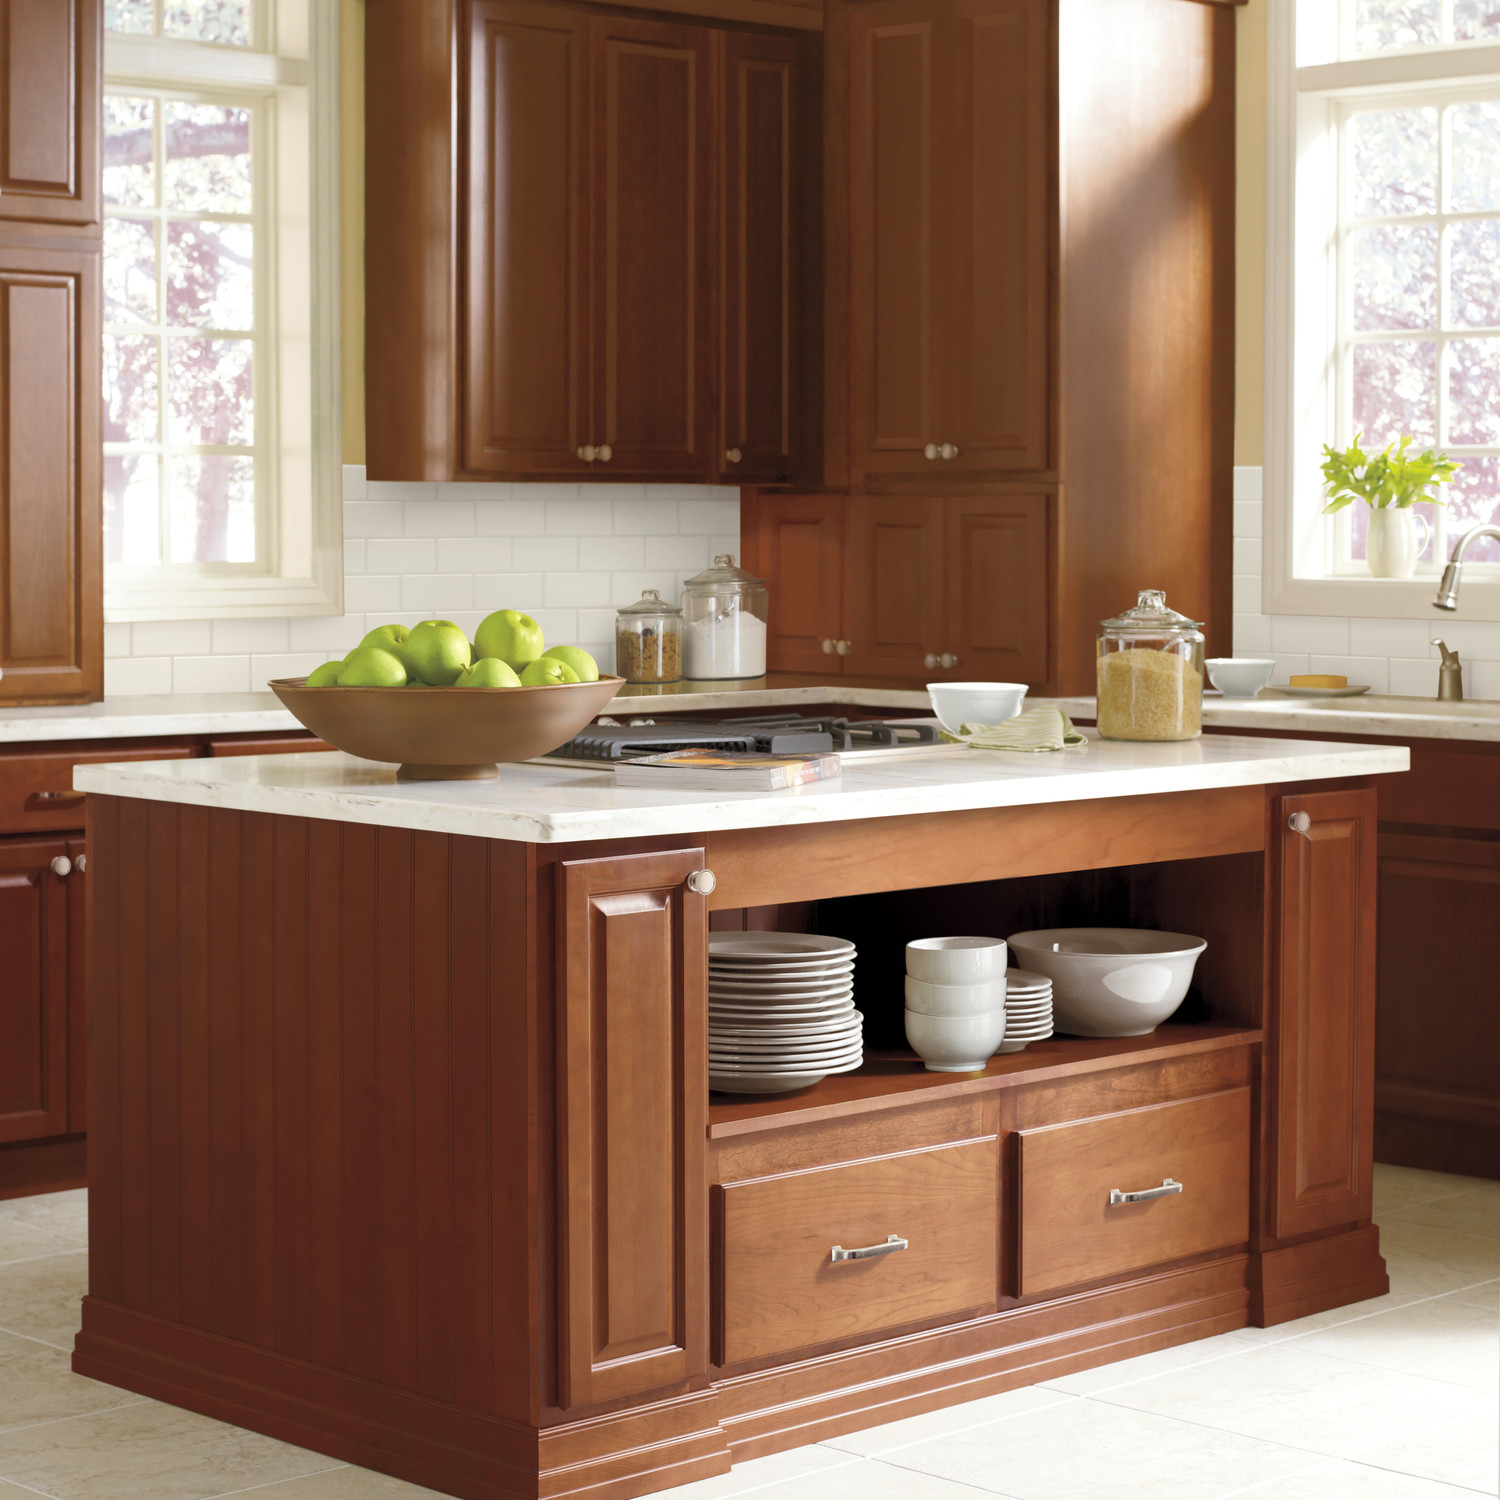 martha stewart kitchen island how to seriously clean your kitchen cabinets martha 20546